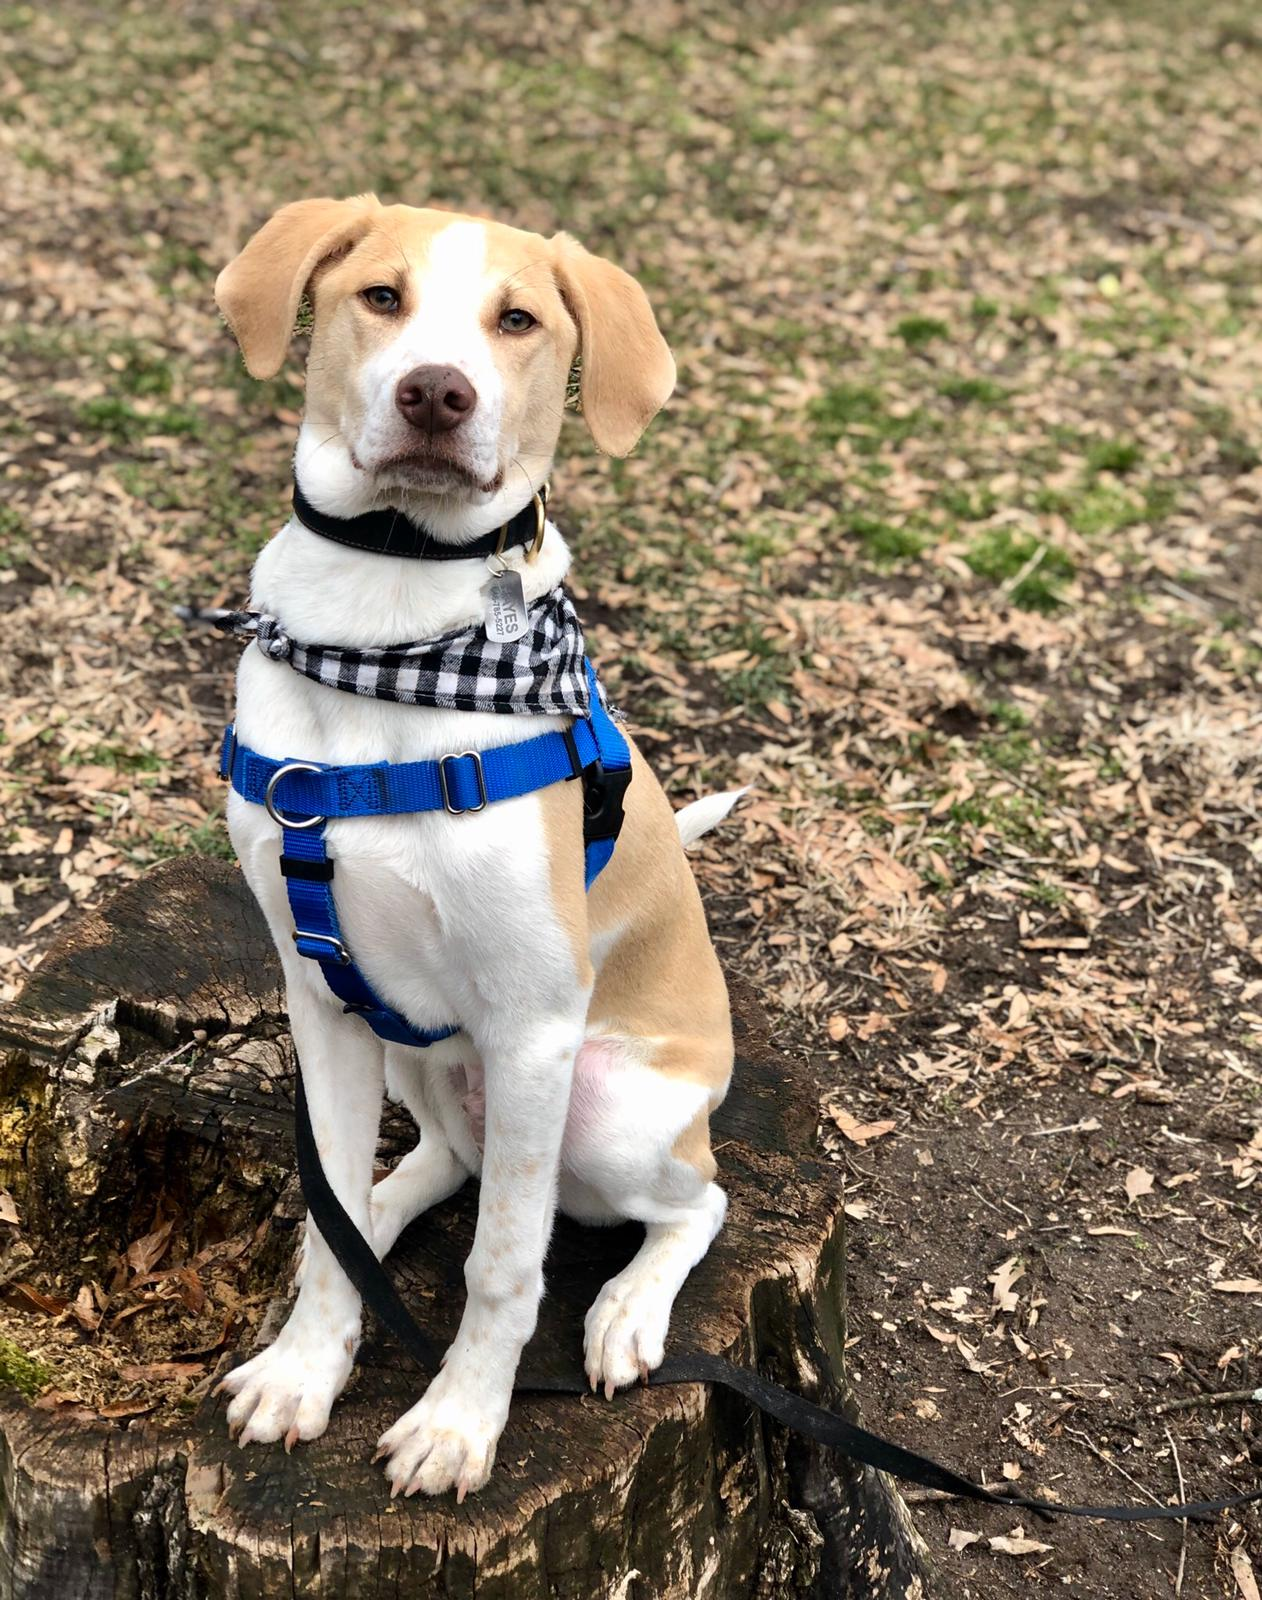 Hayes (pitt hound mix) shows off his good boi sit